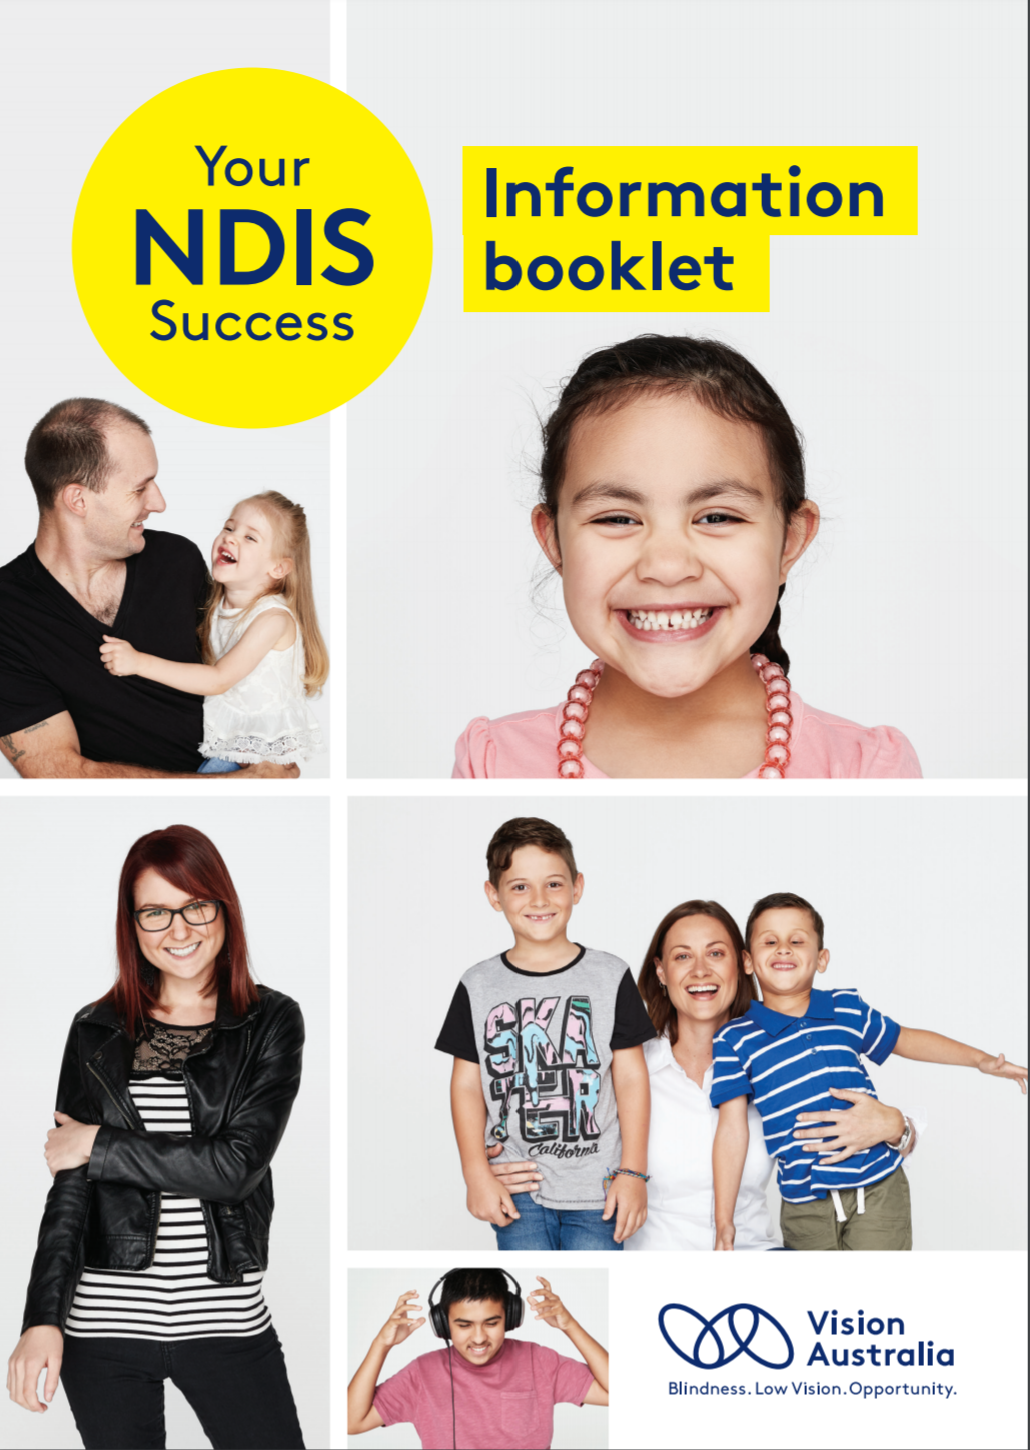 Front cover of the Your NDIS Success: Information booklet